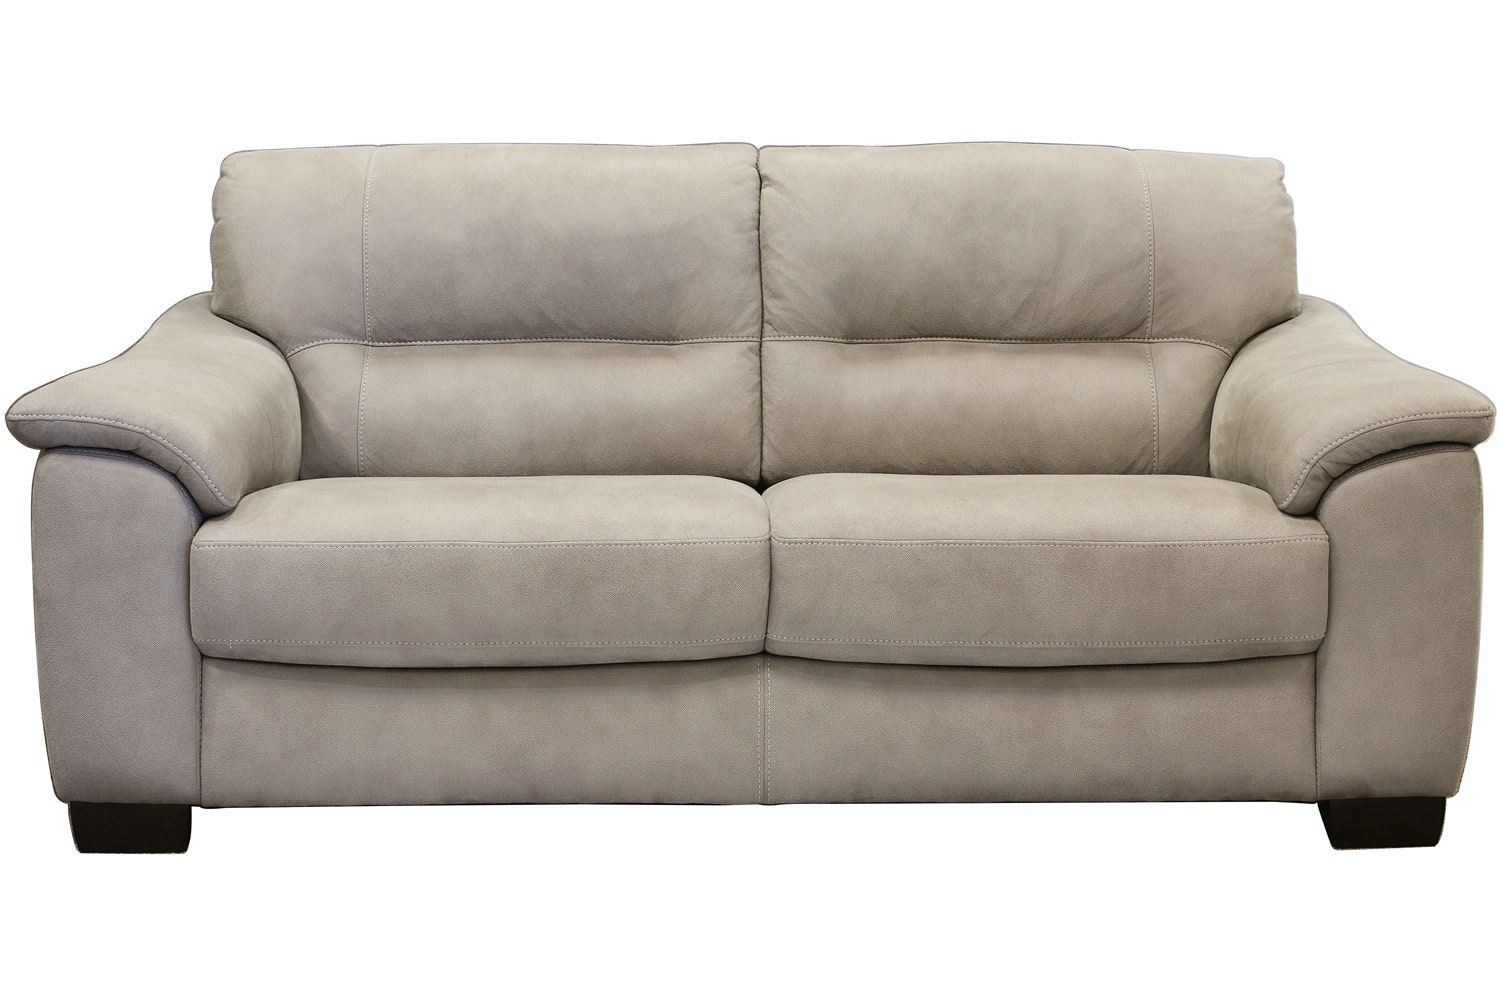 Belle 3 Seater Sofa